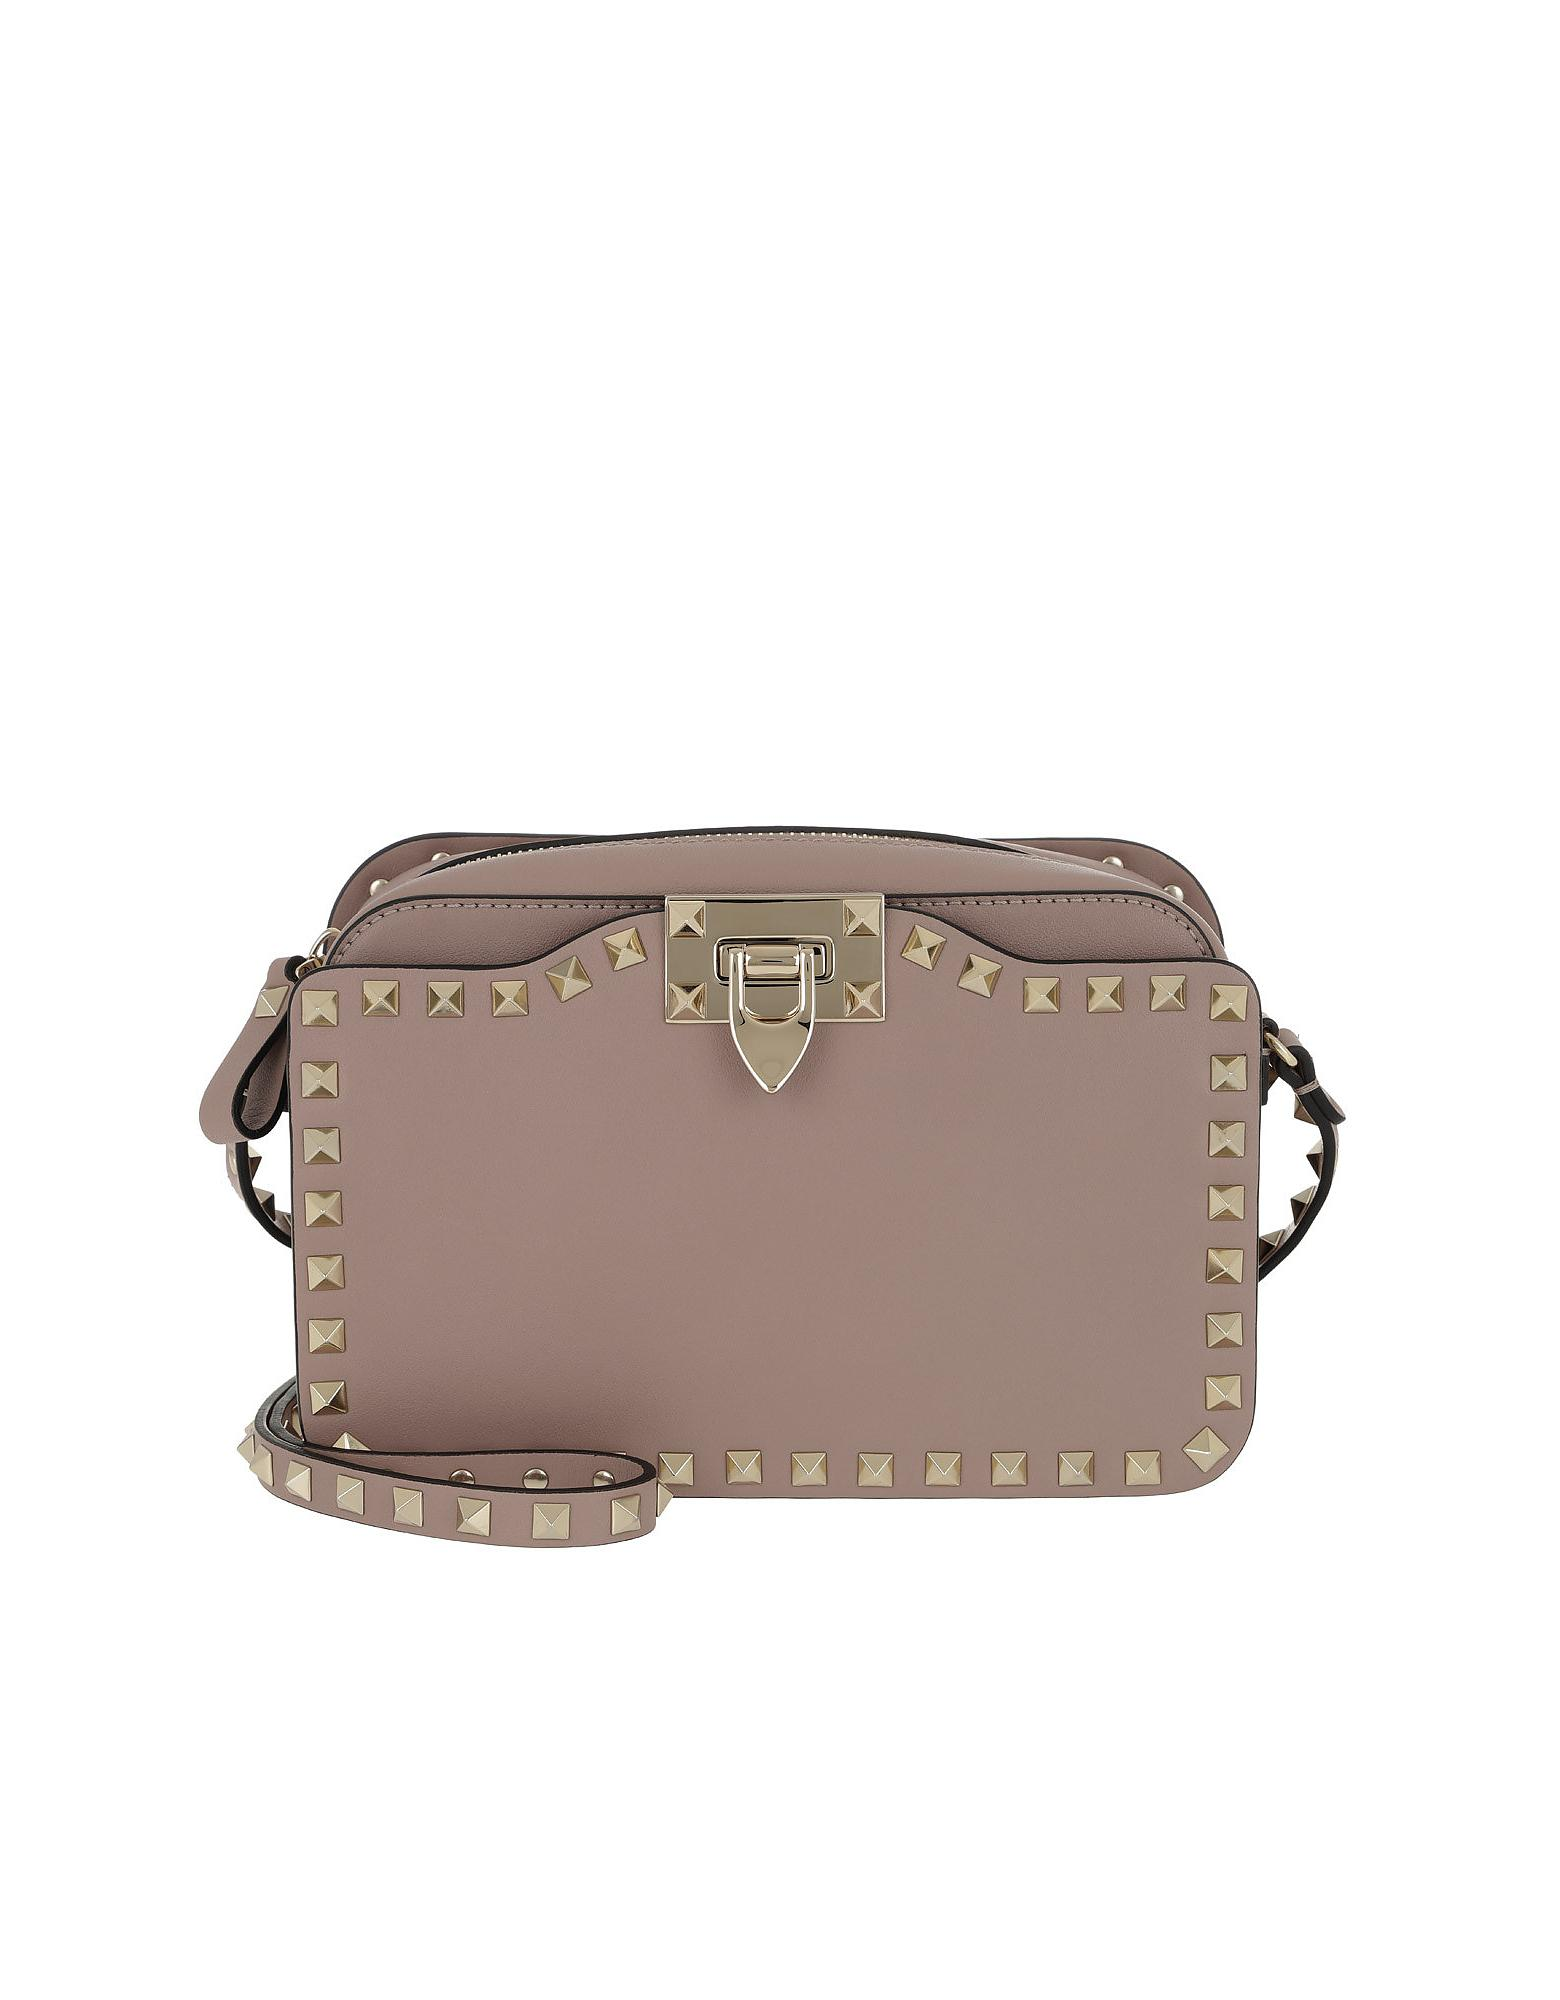 7b9cc2678ce1 Lyst - Valentino Rockstud Crossbody Camera Bag Leather Poudre in Pink